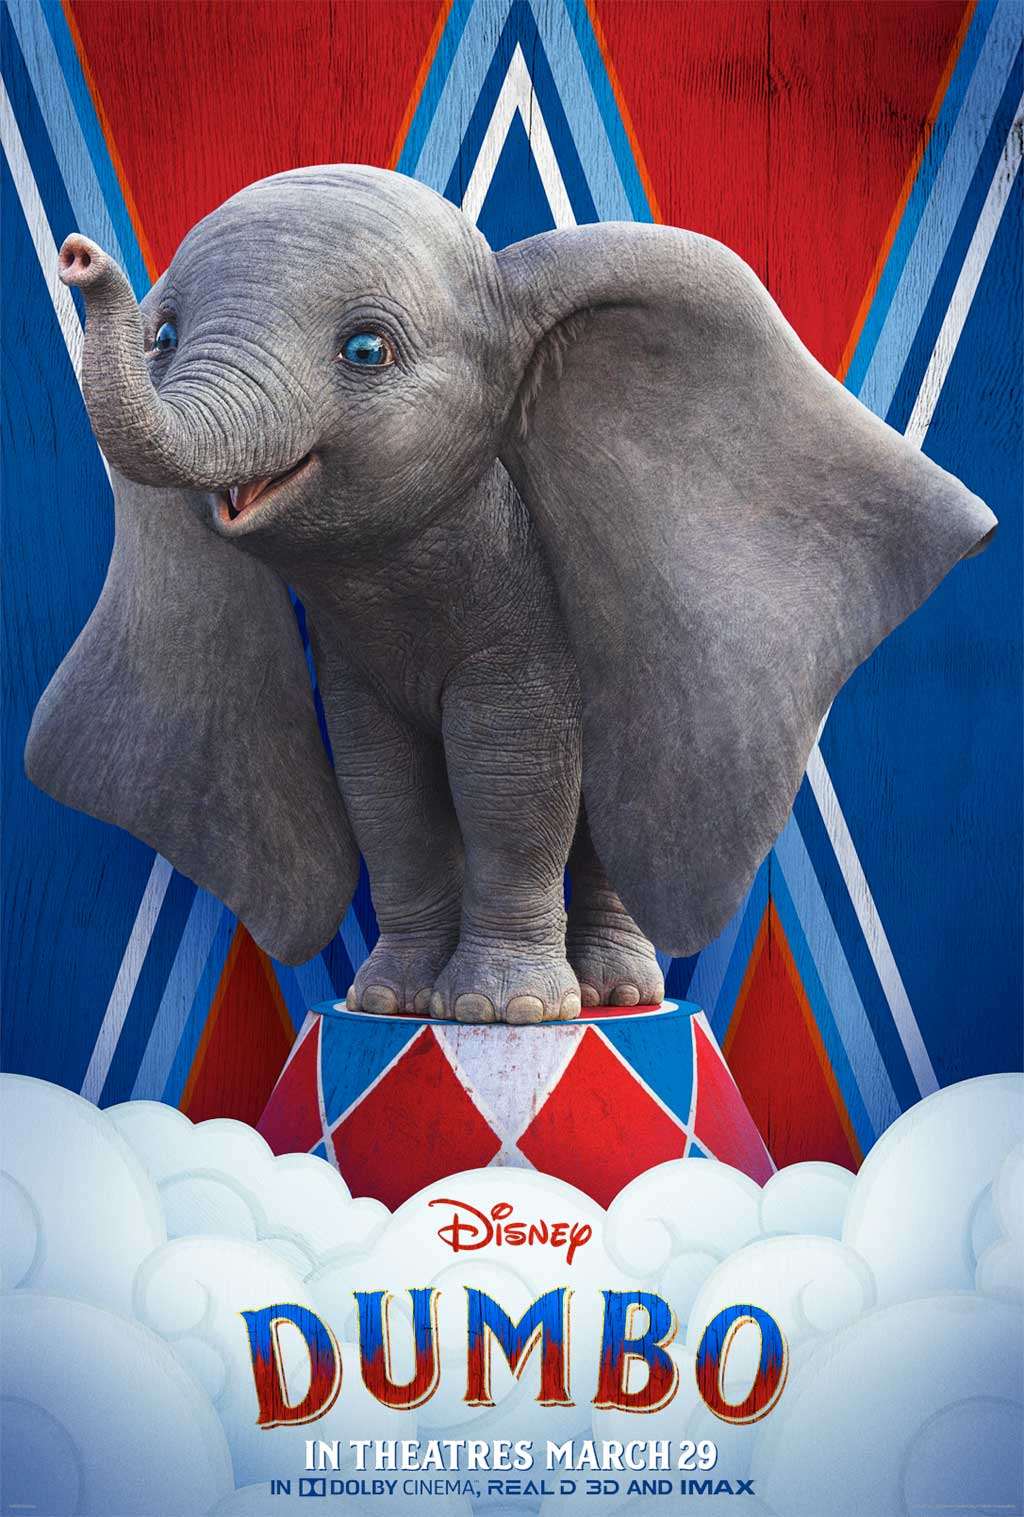 Dumbo, a newborn elephant with a sweet disposition and oversized ears